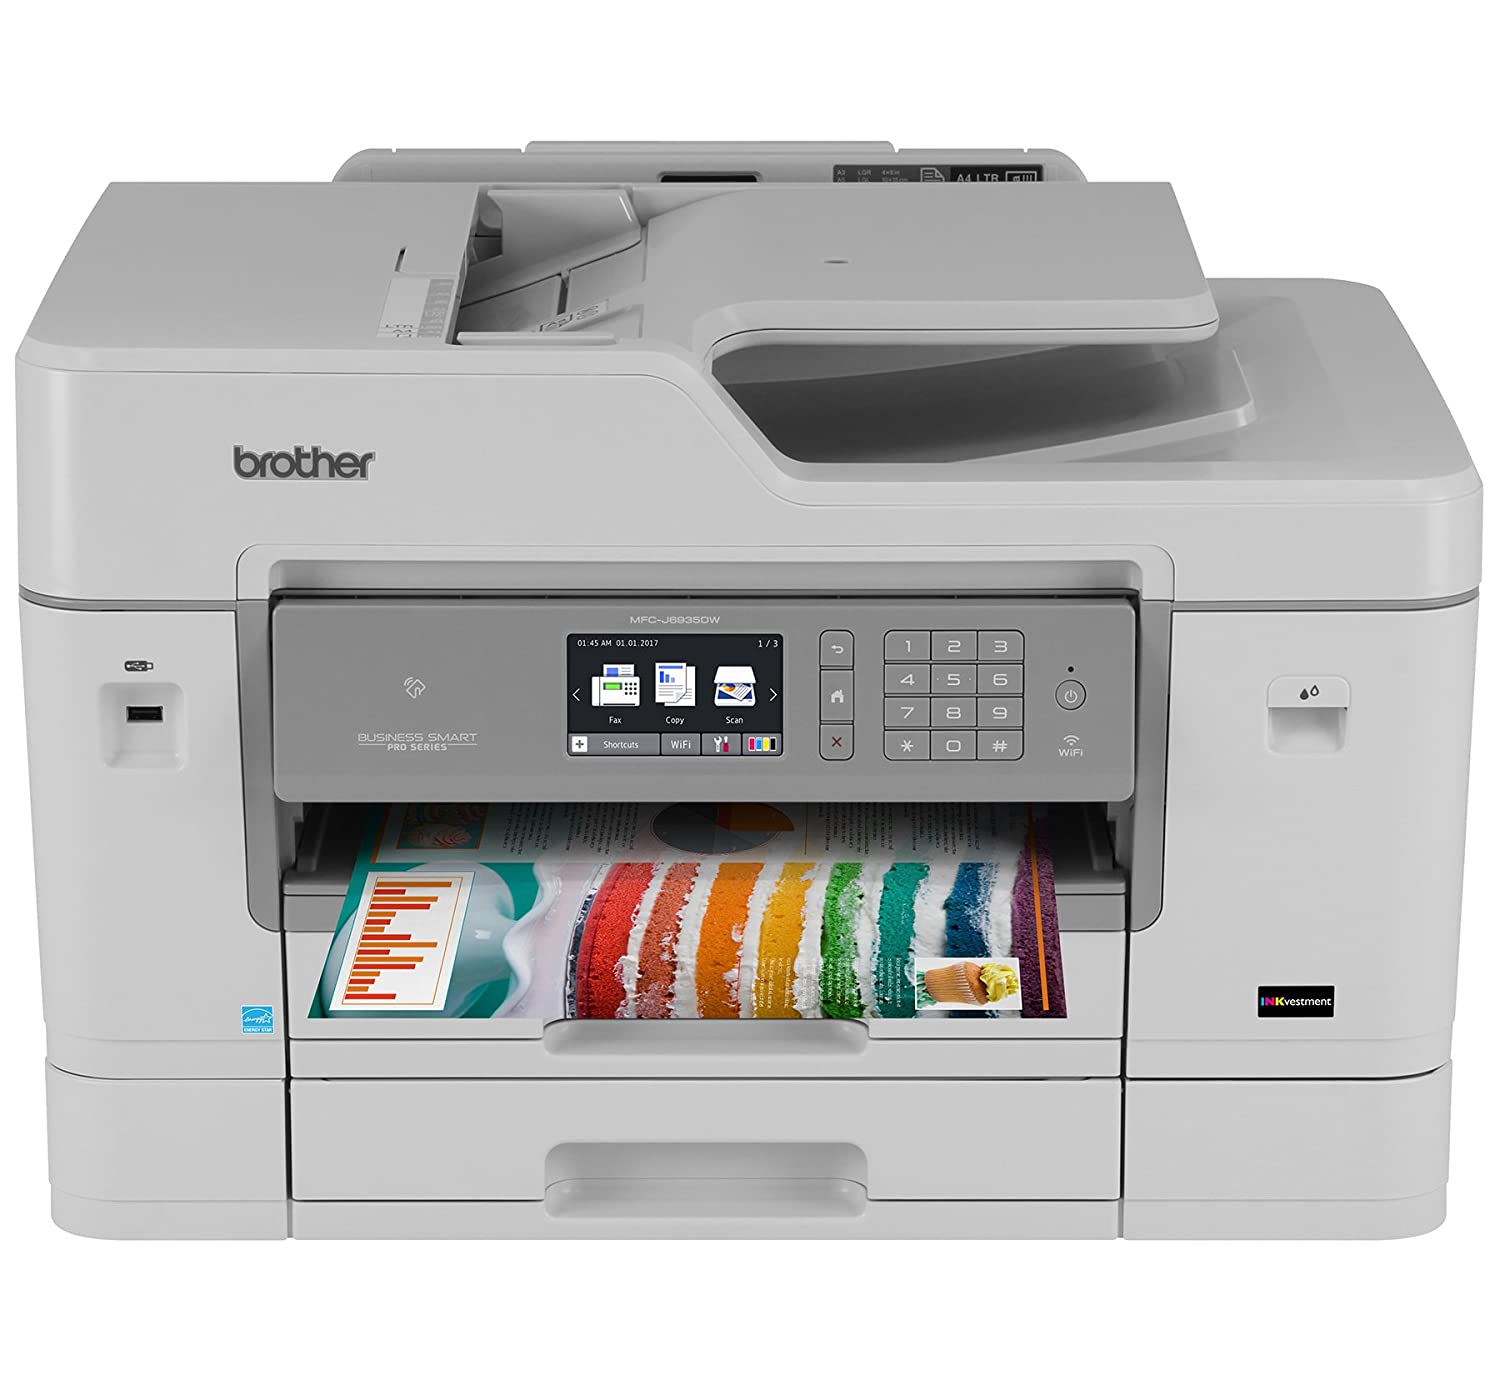 Amazon brother mfc j6935dw inkjet all in one color printer amazon brother mfc j6935dw inkjet all in one color printer wireless connectivity automatic duplex printing amazon dash replenishment enabled reheart Gallery